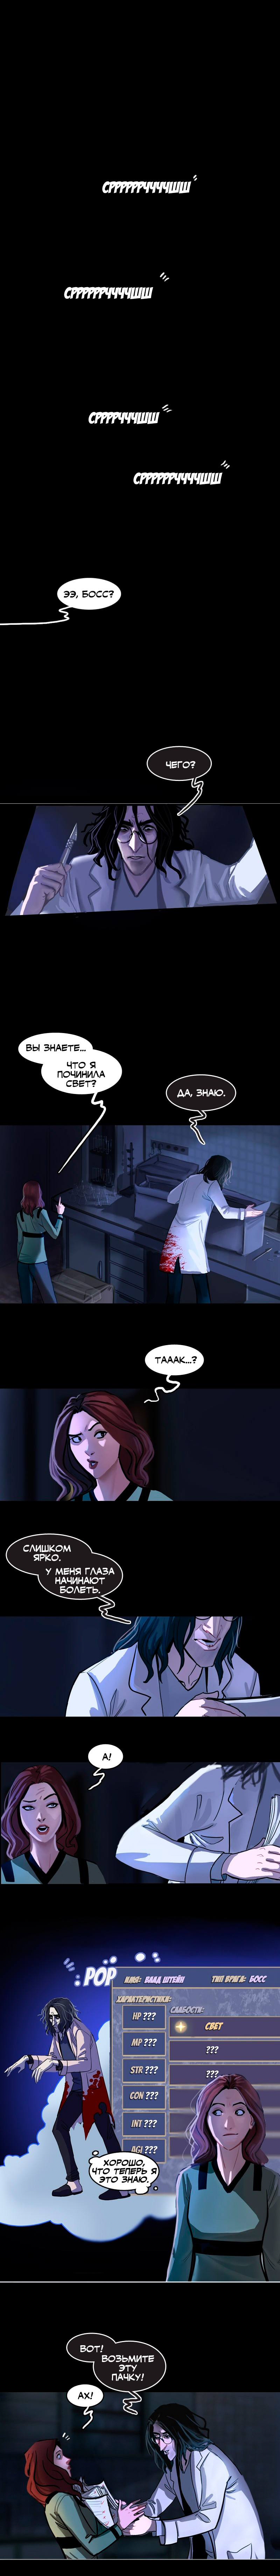 Комикс Blood Stain: выпуск №274